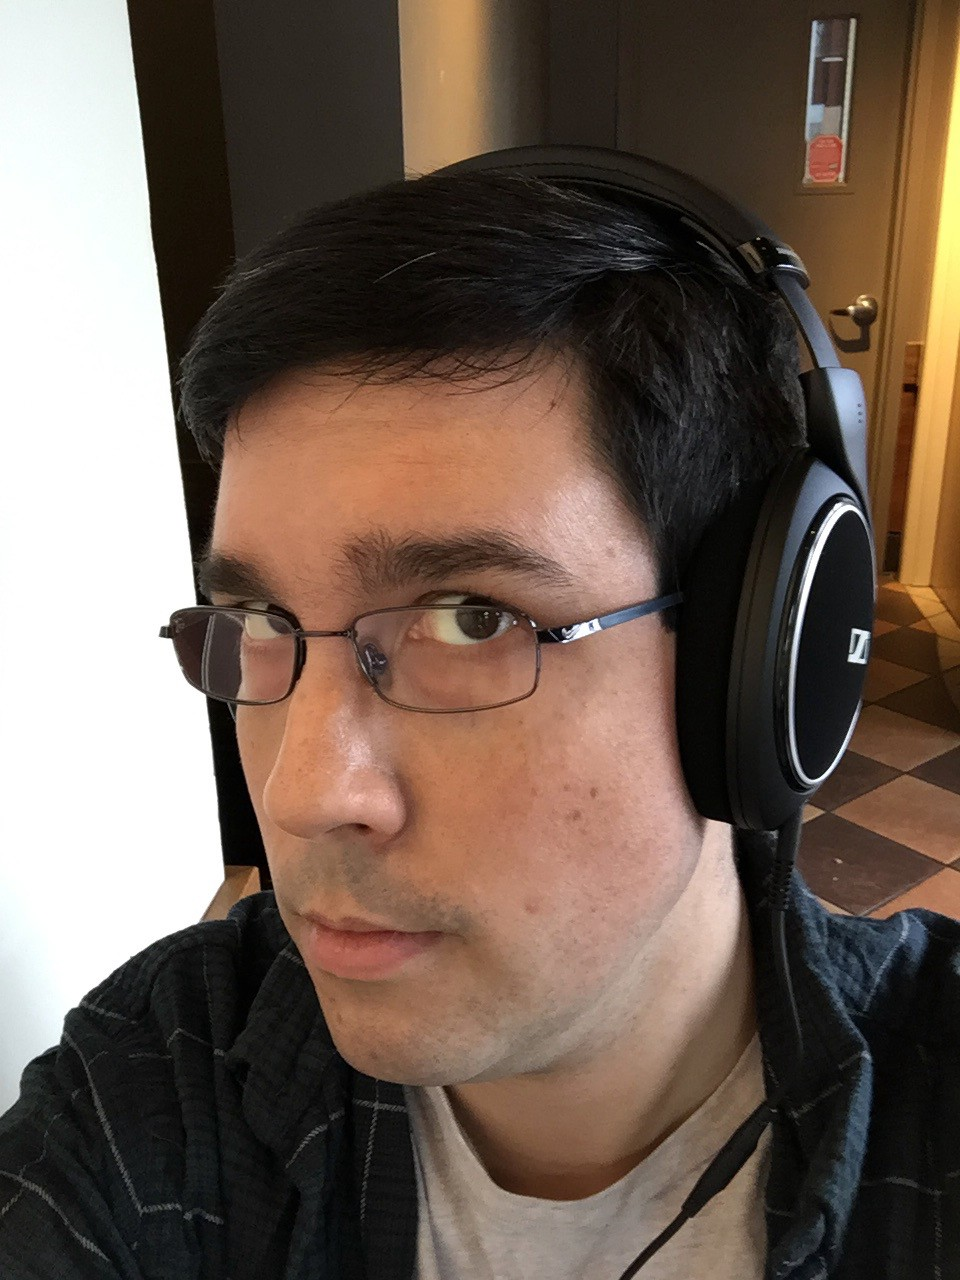 1c84822e794 Headphone selfie! These sit nicely on the head, and don't make you look  stupid in public places.